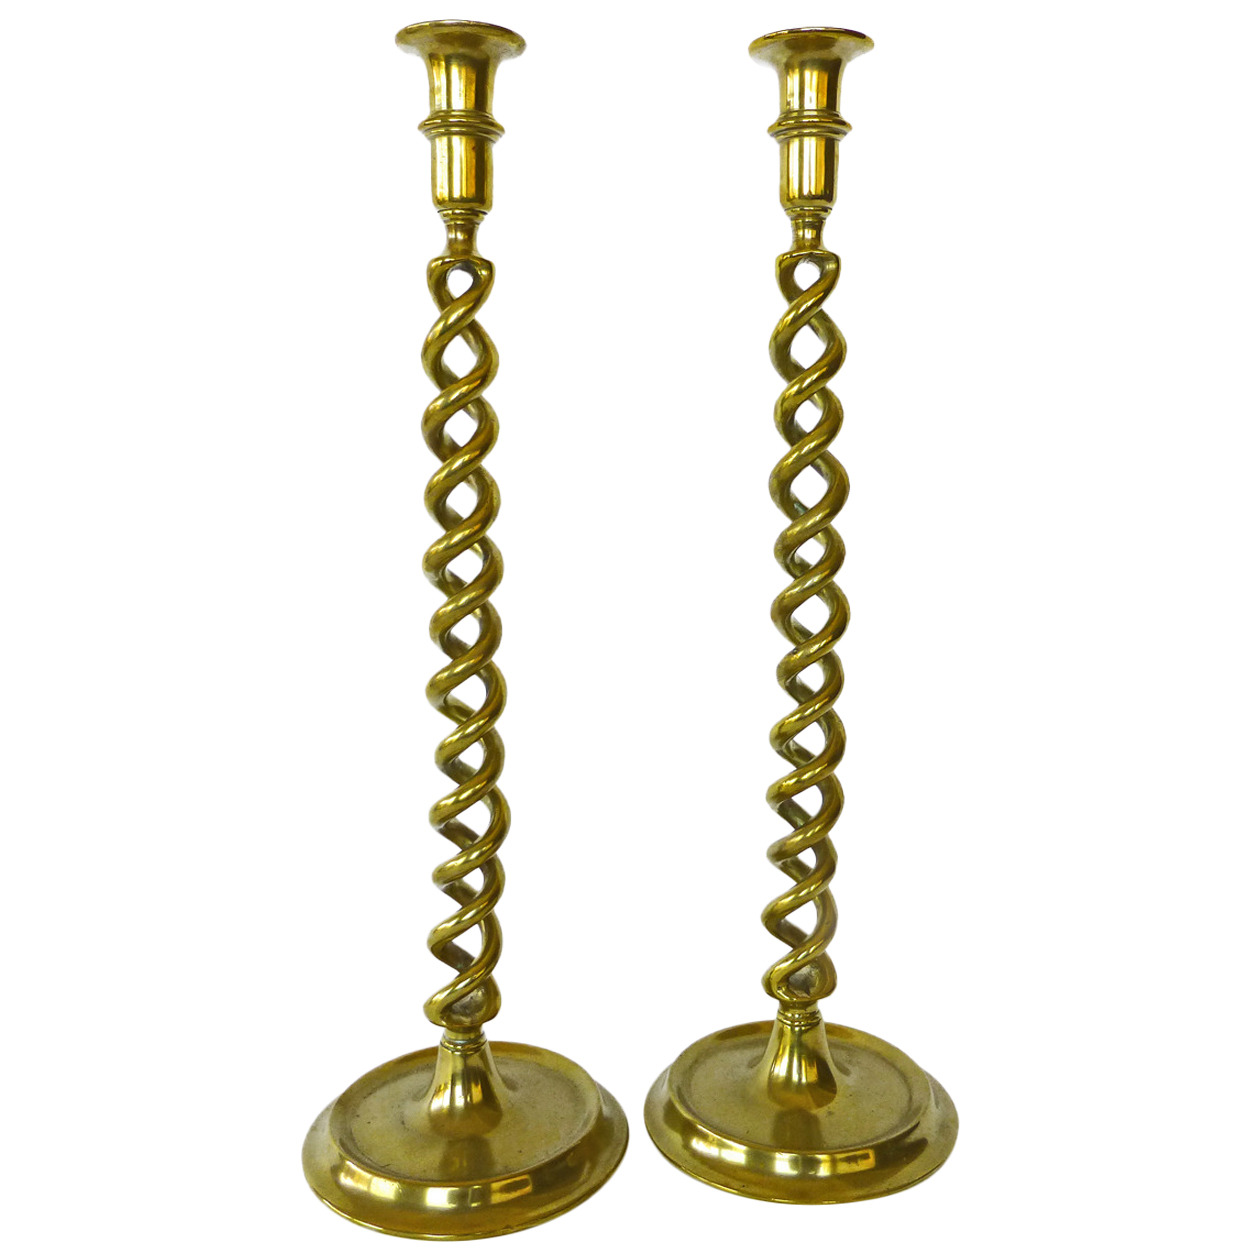 Pair of English Victorian Brass Double Twist Candlesticks, circa 1875